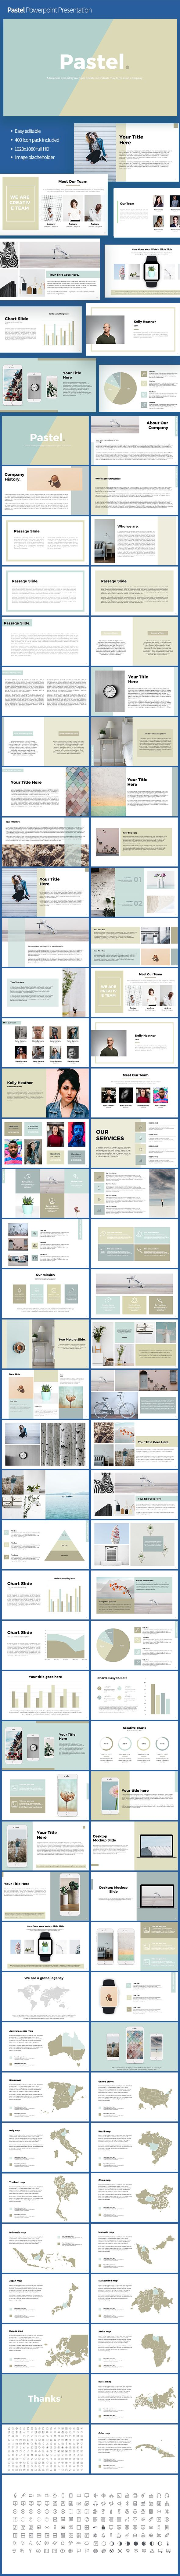 #Pastel #Powerpoint #Template - PowerPoint Templates Presentation Templates. 16:9 ASPECT RATIO - Easy and fully editable in PowerPoint (shape colour, size, position, etc) - 400 easy editable font icons kit. - IMAGE PLACEHOLDER READY - Easy editable data driven charts - Preview images are not included